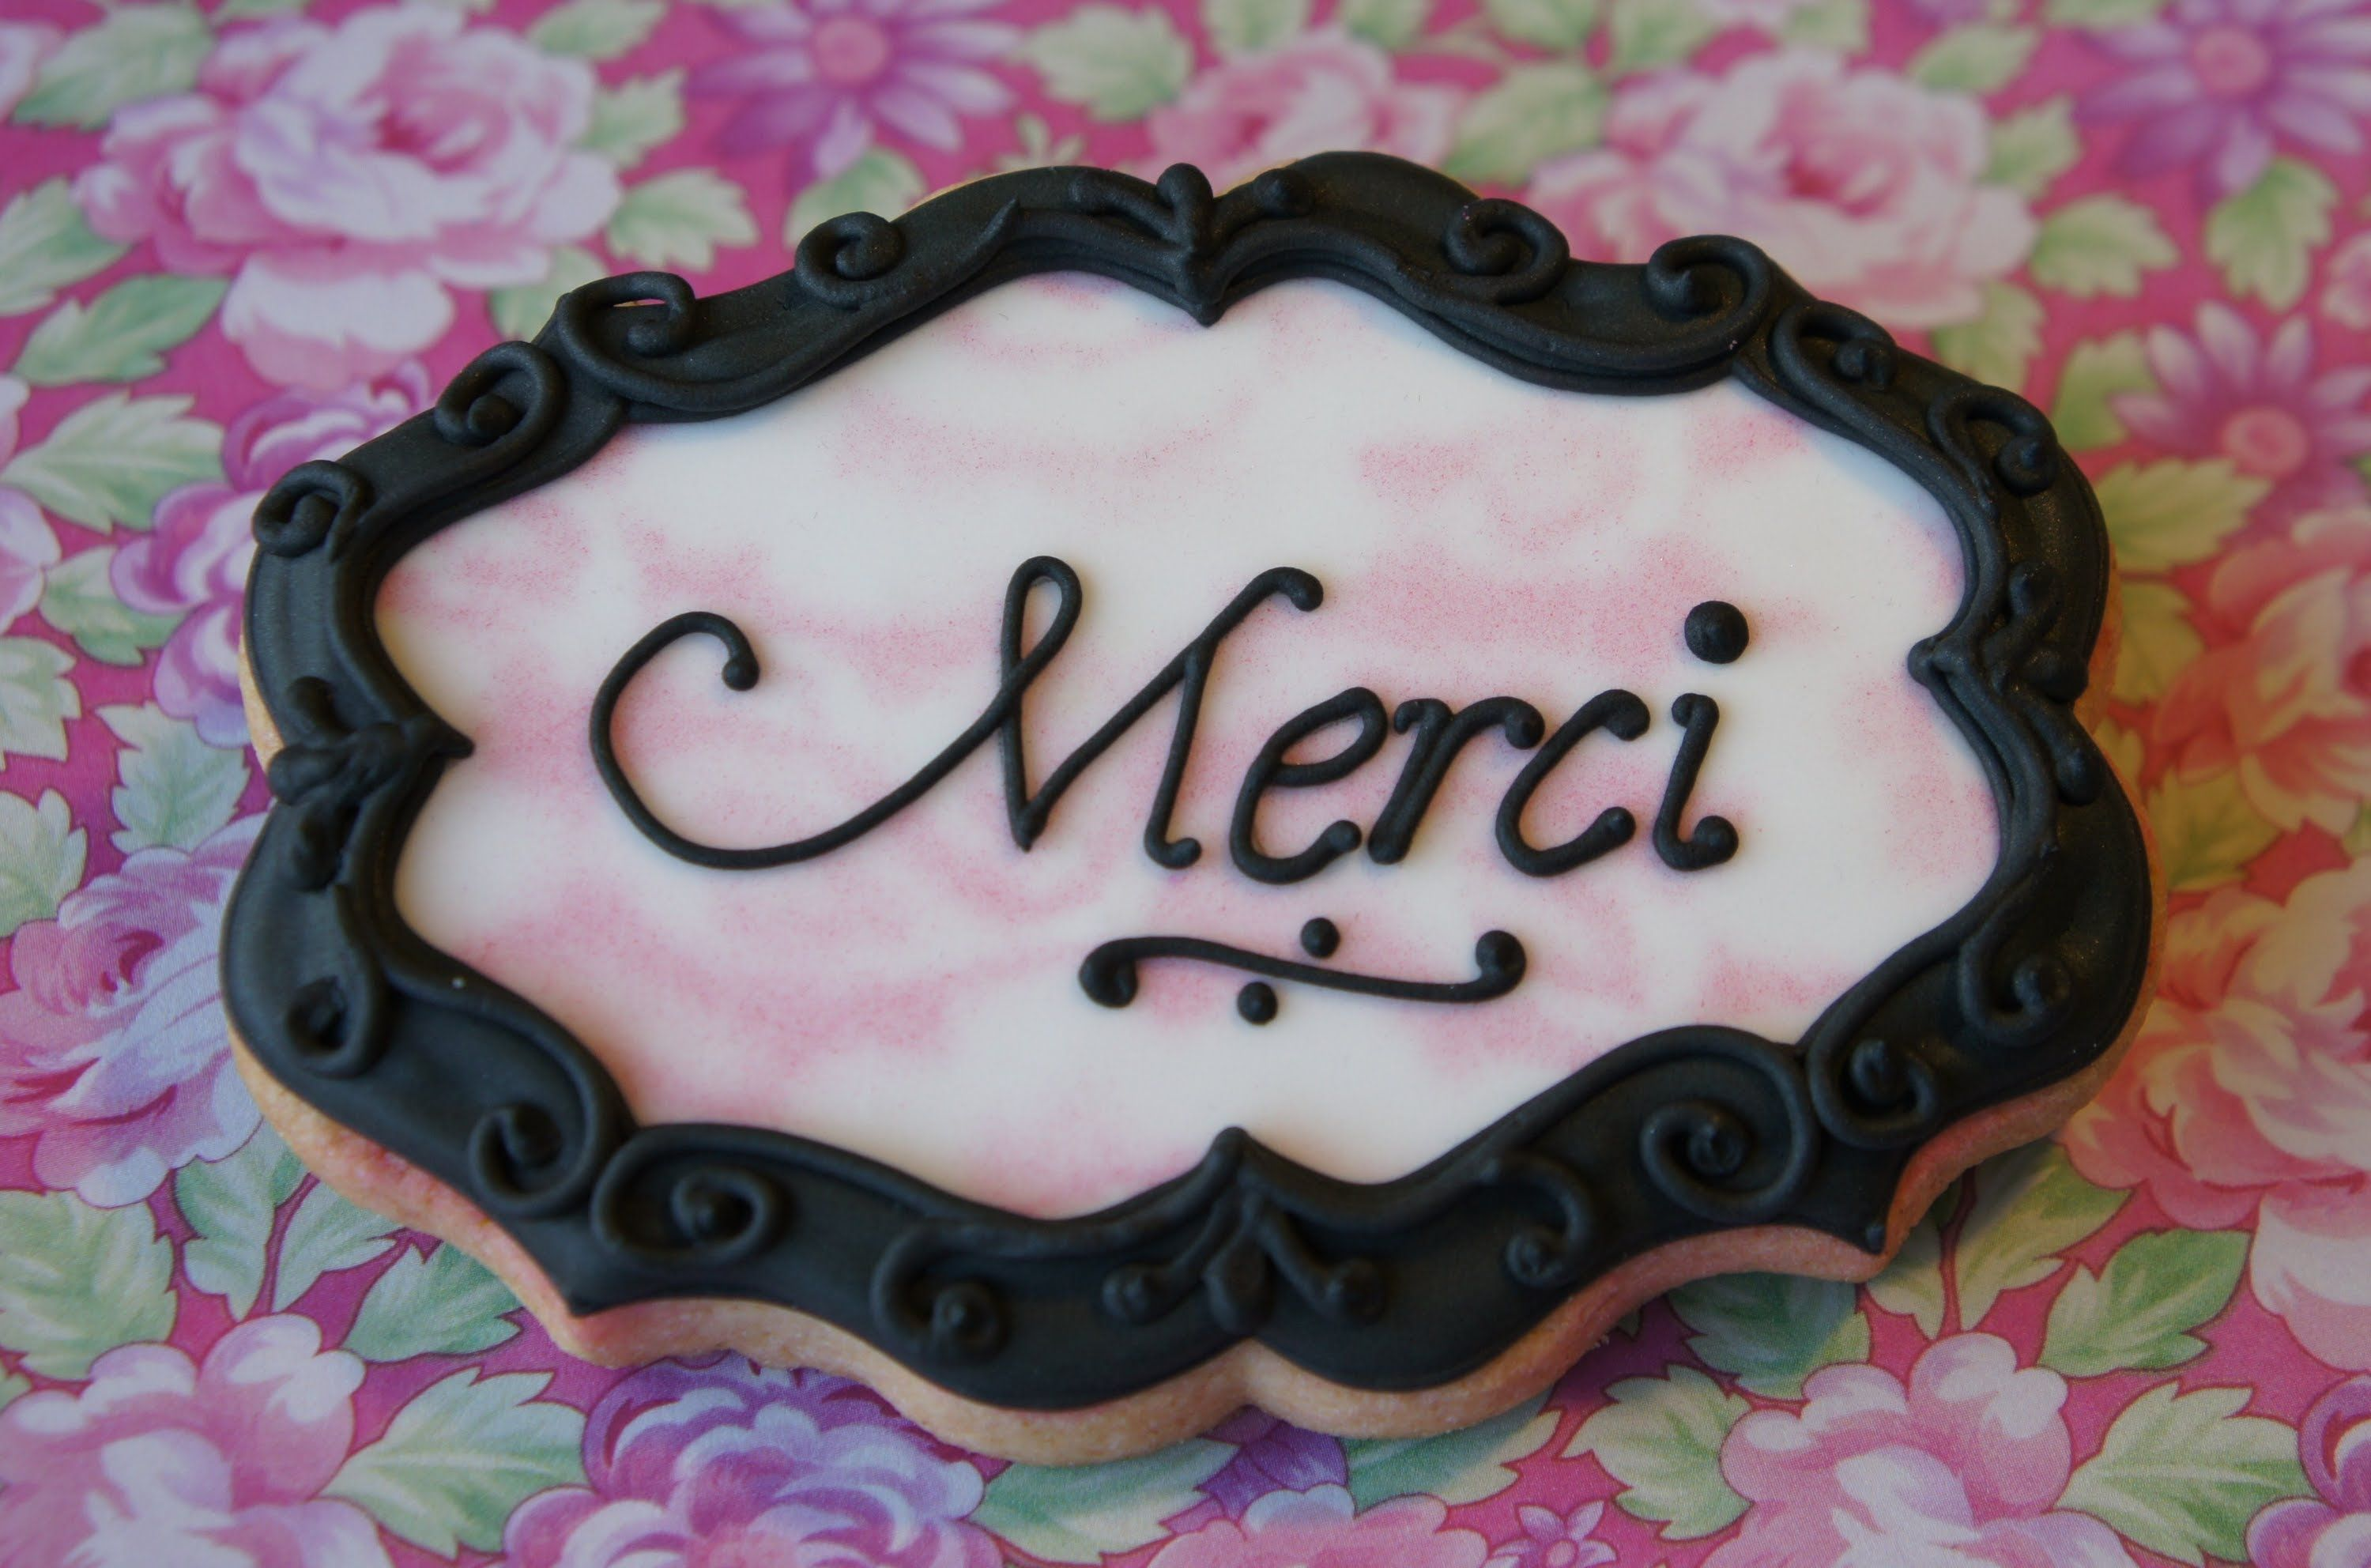 Shabby chic lace cookies - Image transfer without a KopyKake